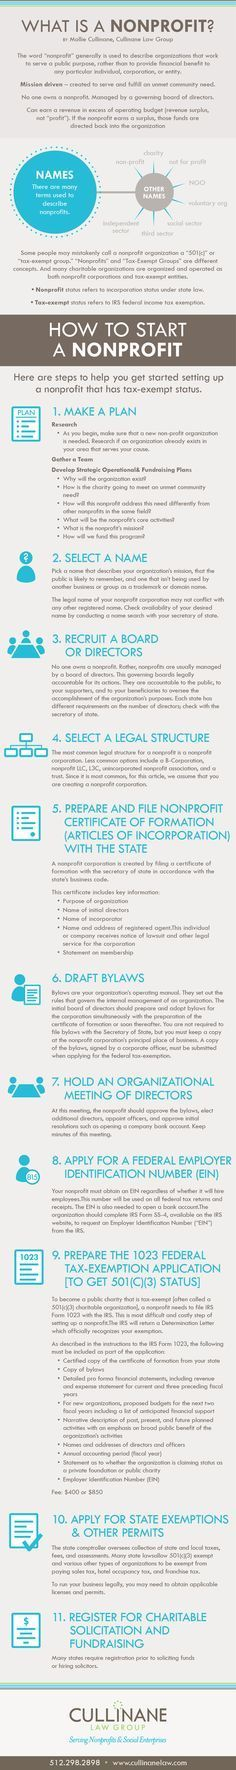 How to Write a Nonprofit Business Plan - Expert Advice | Primer ...